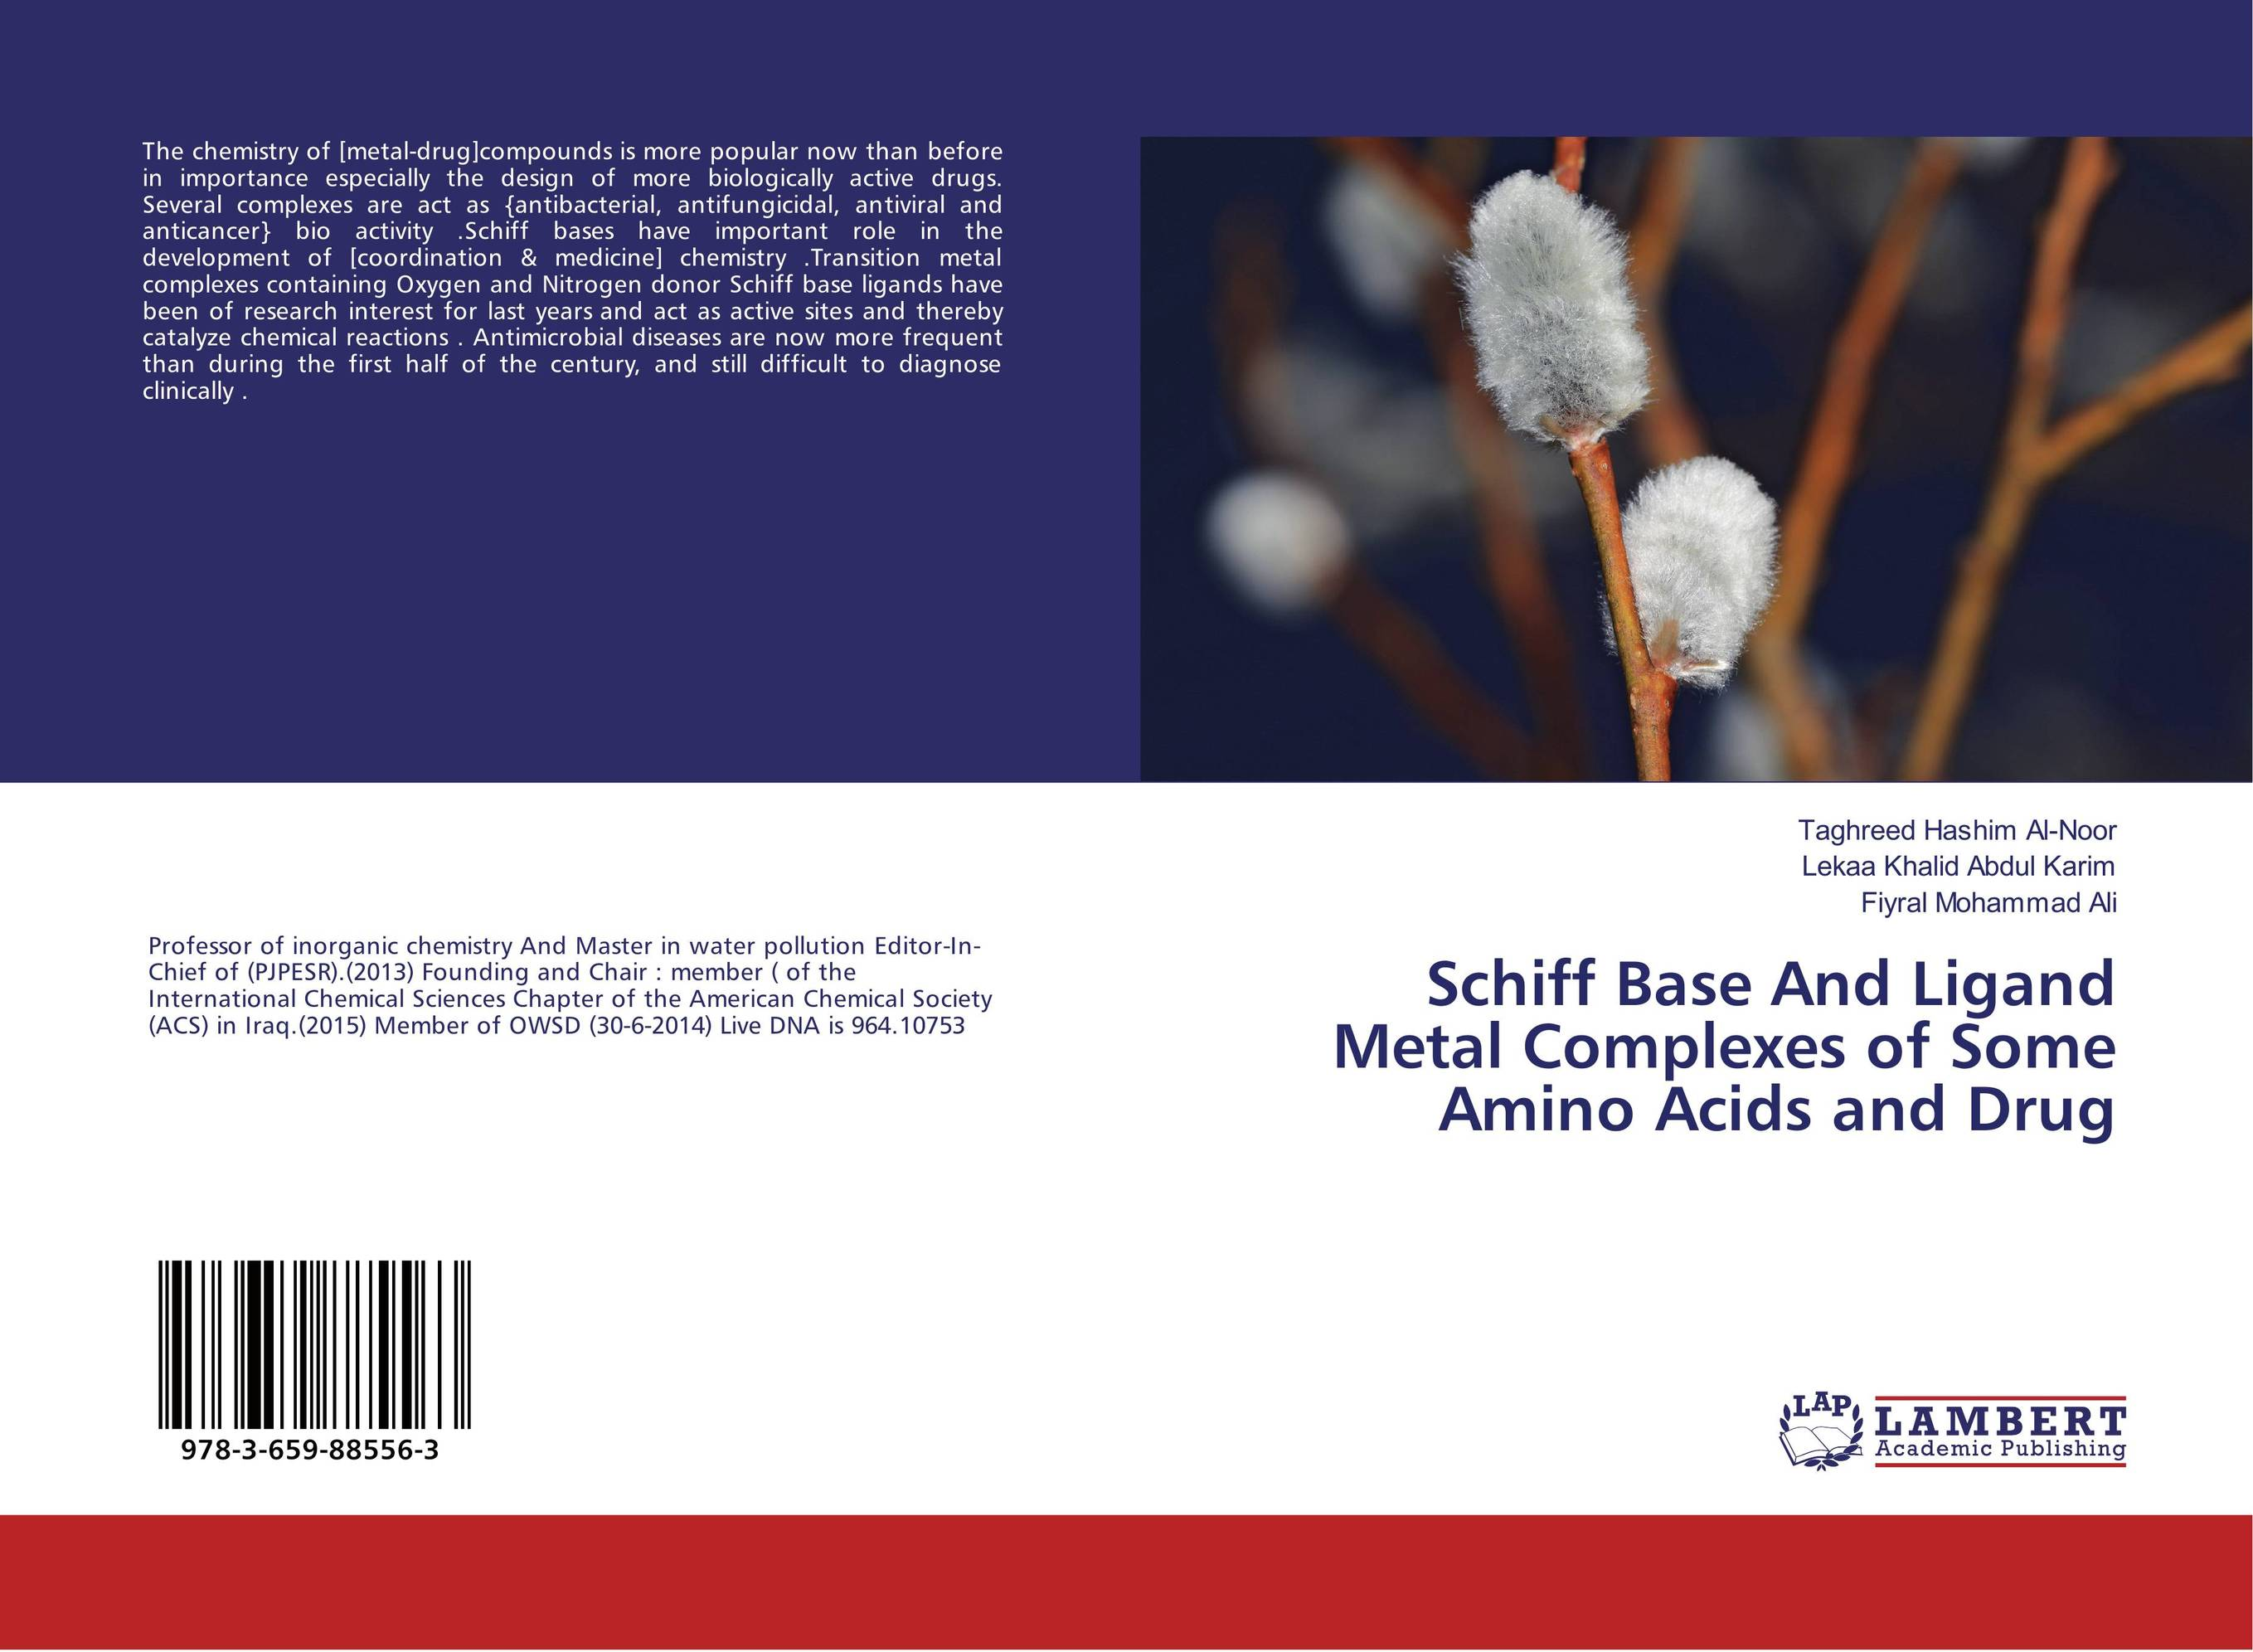 Schiff Base And Ligand Metal Complexes of Some Amino Acids and Drug studies on schiff bases derived from acetophenones